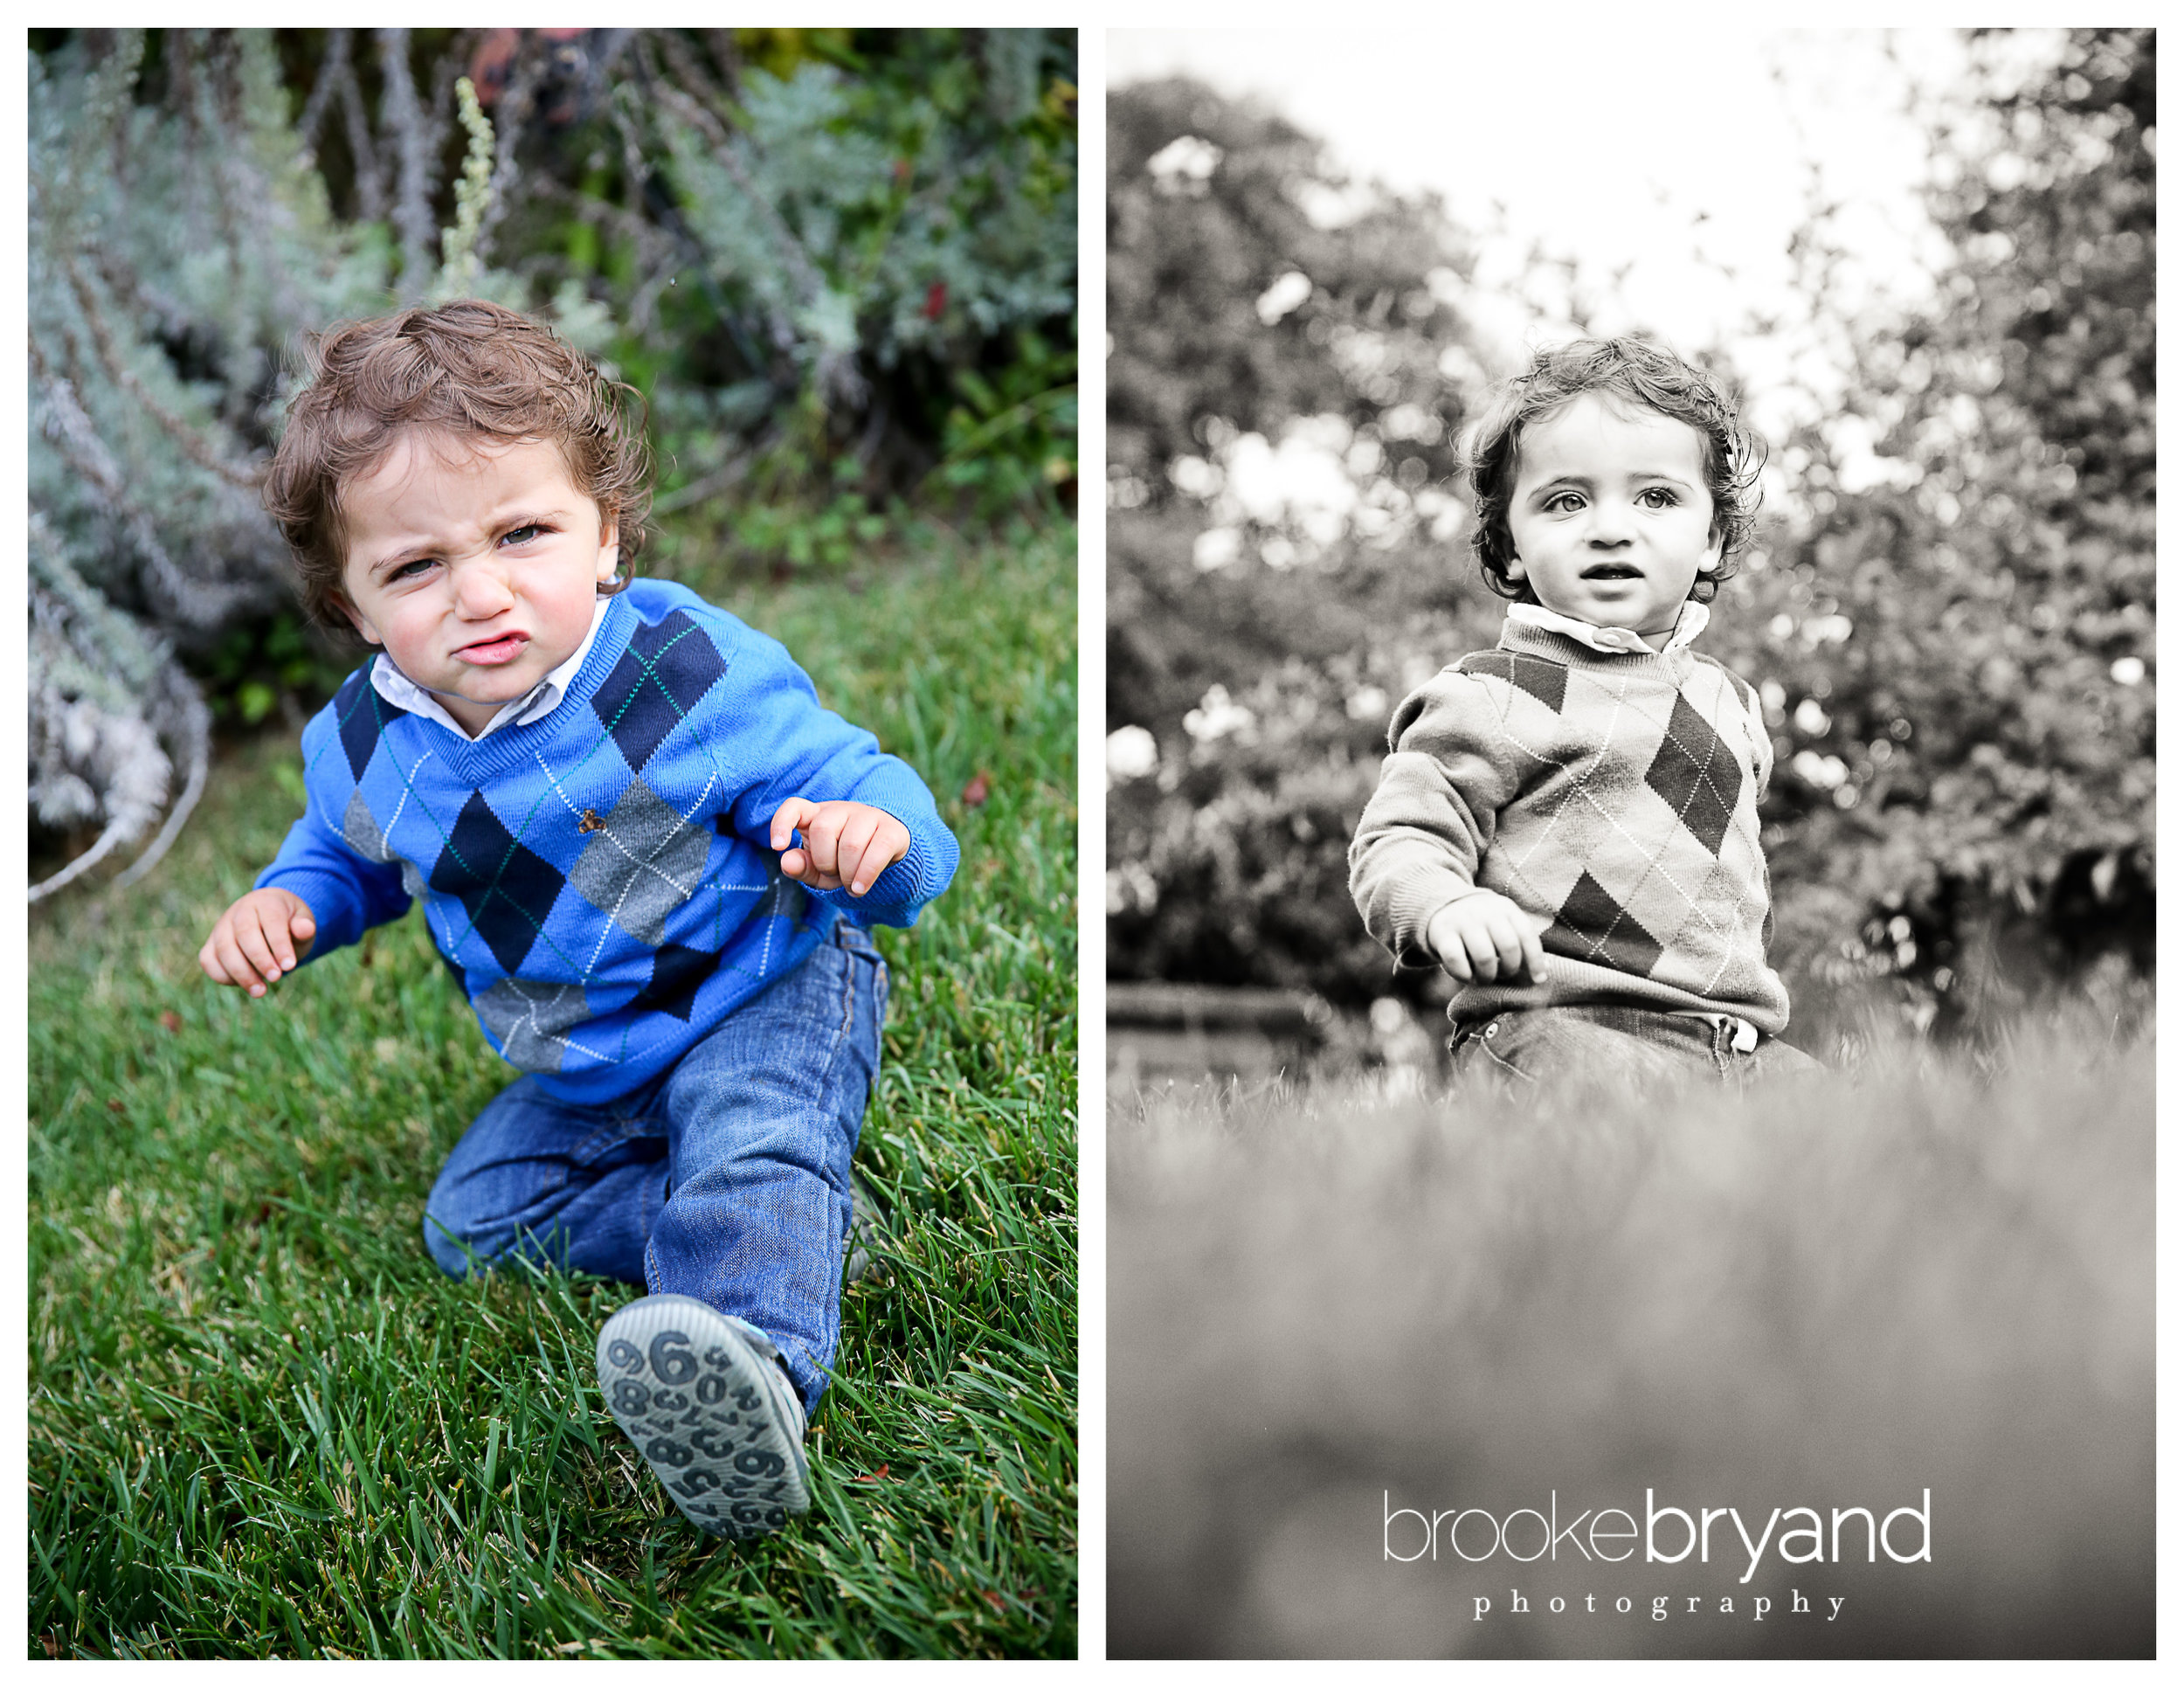 2up_barenblat_brooke-bryand-photography_san-francisco-family-photographer_presidio-lovers-lane-family-photo-location-1.jpg